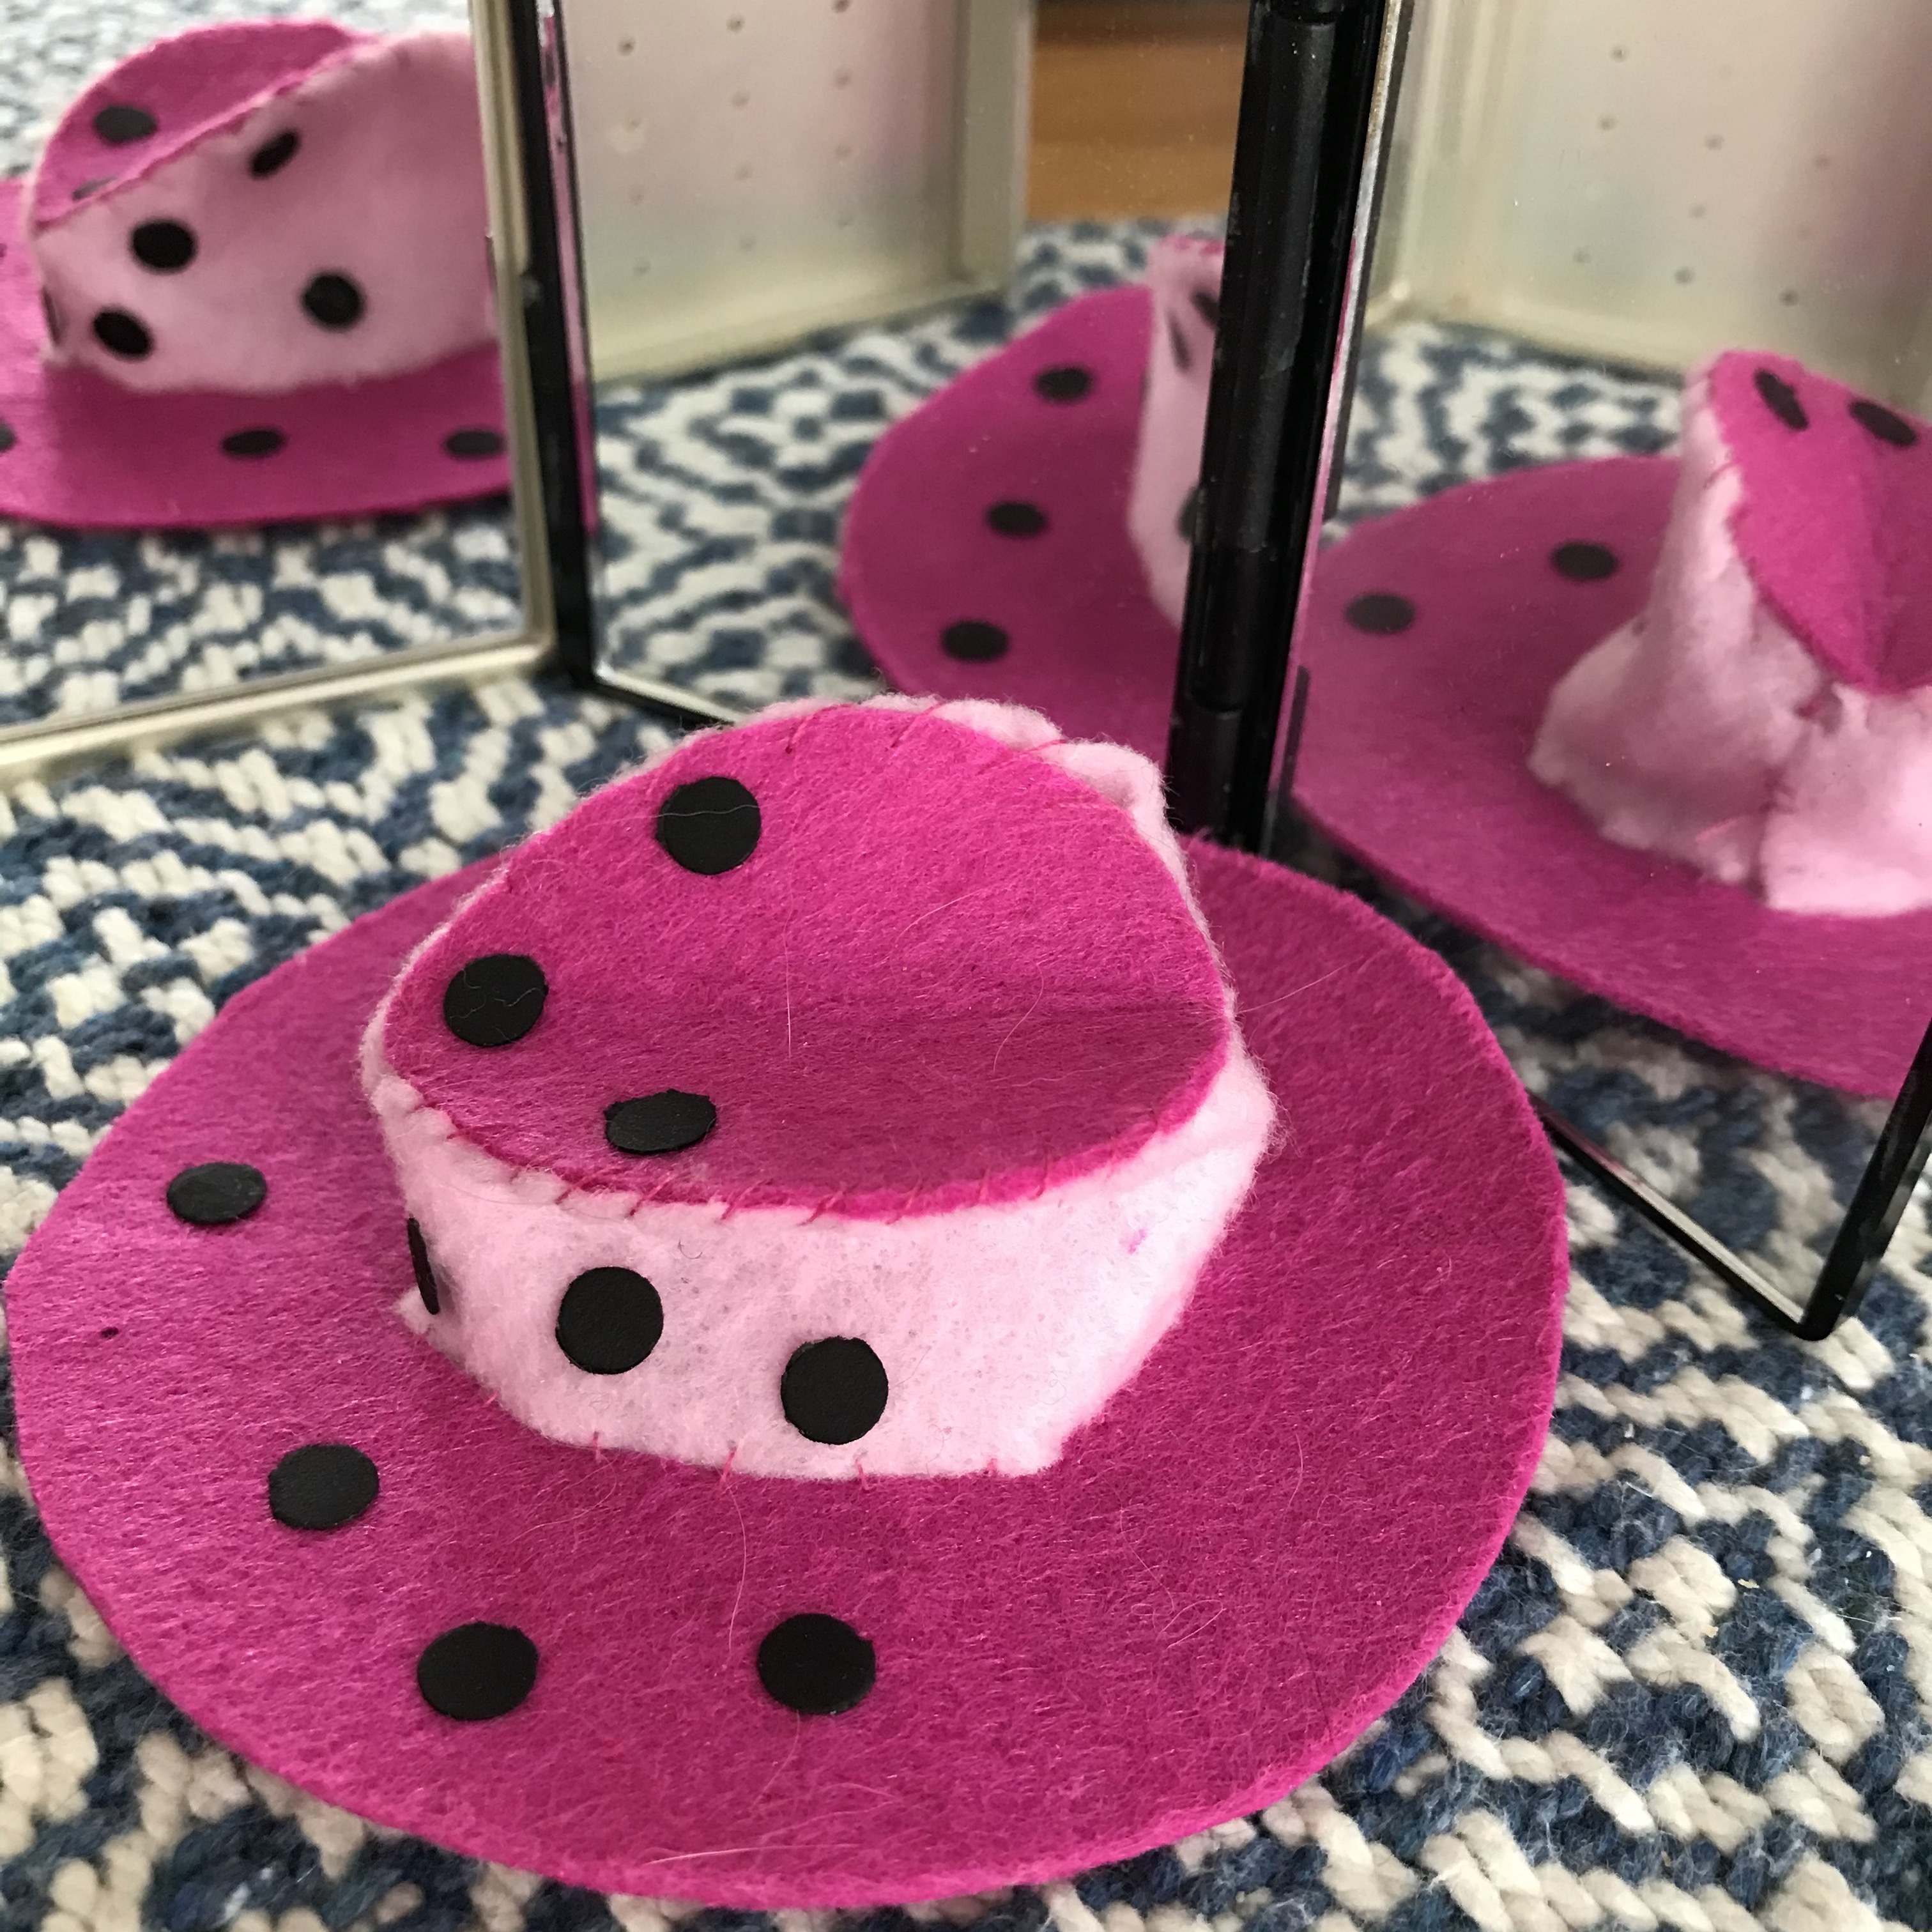 pink hat with polka dots reflected in multiple mirrors